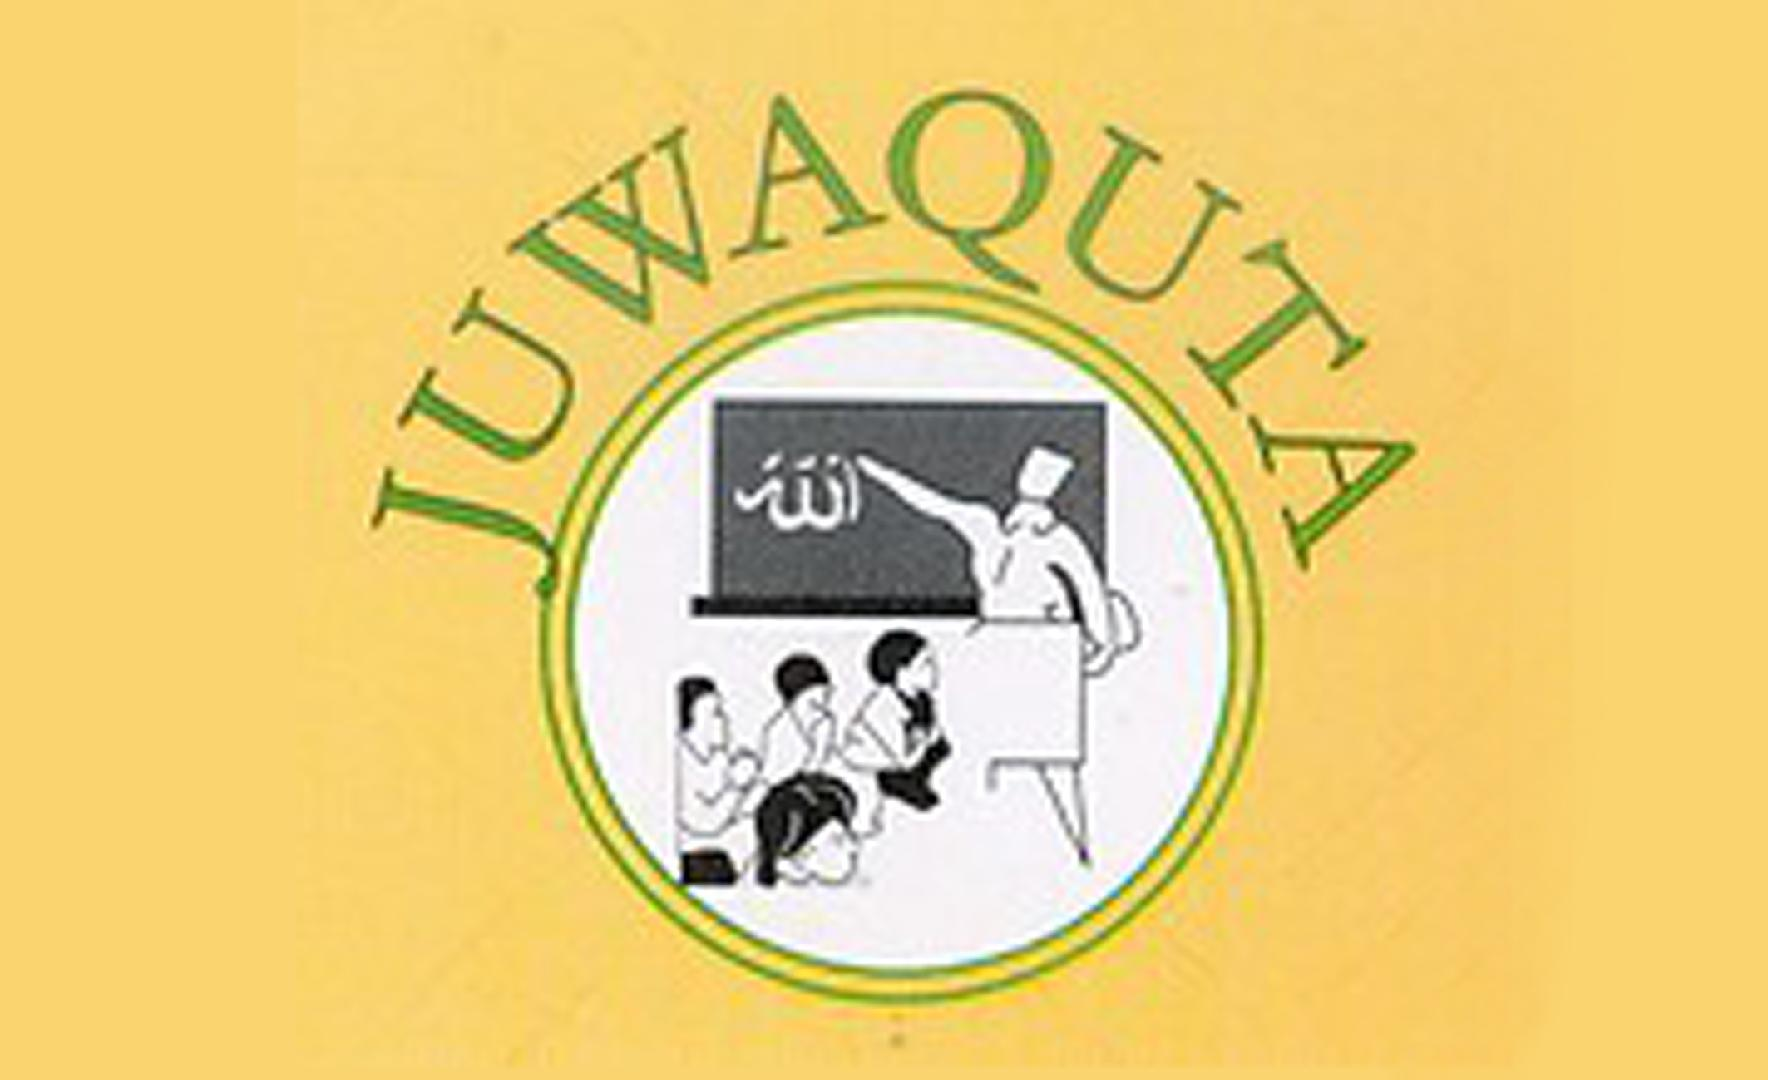 Association of Quran Teachers in Tanzania (JUWAQUTA)